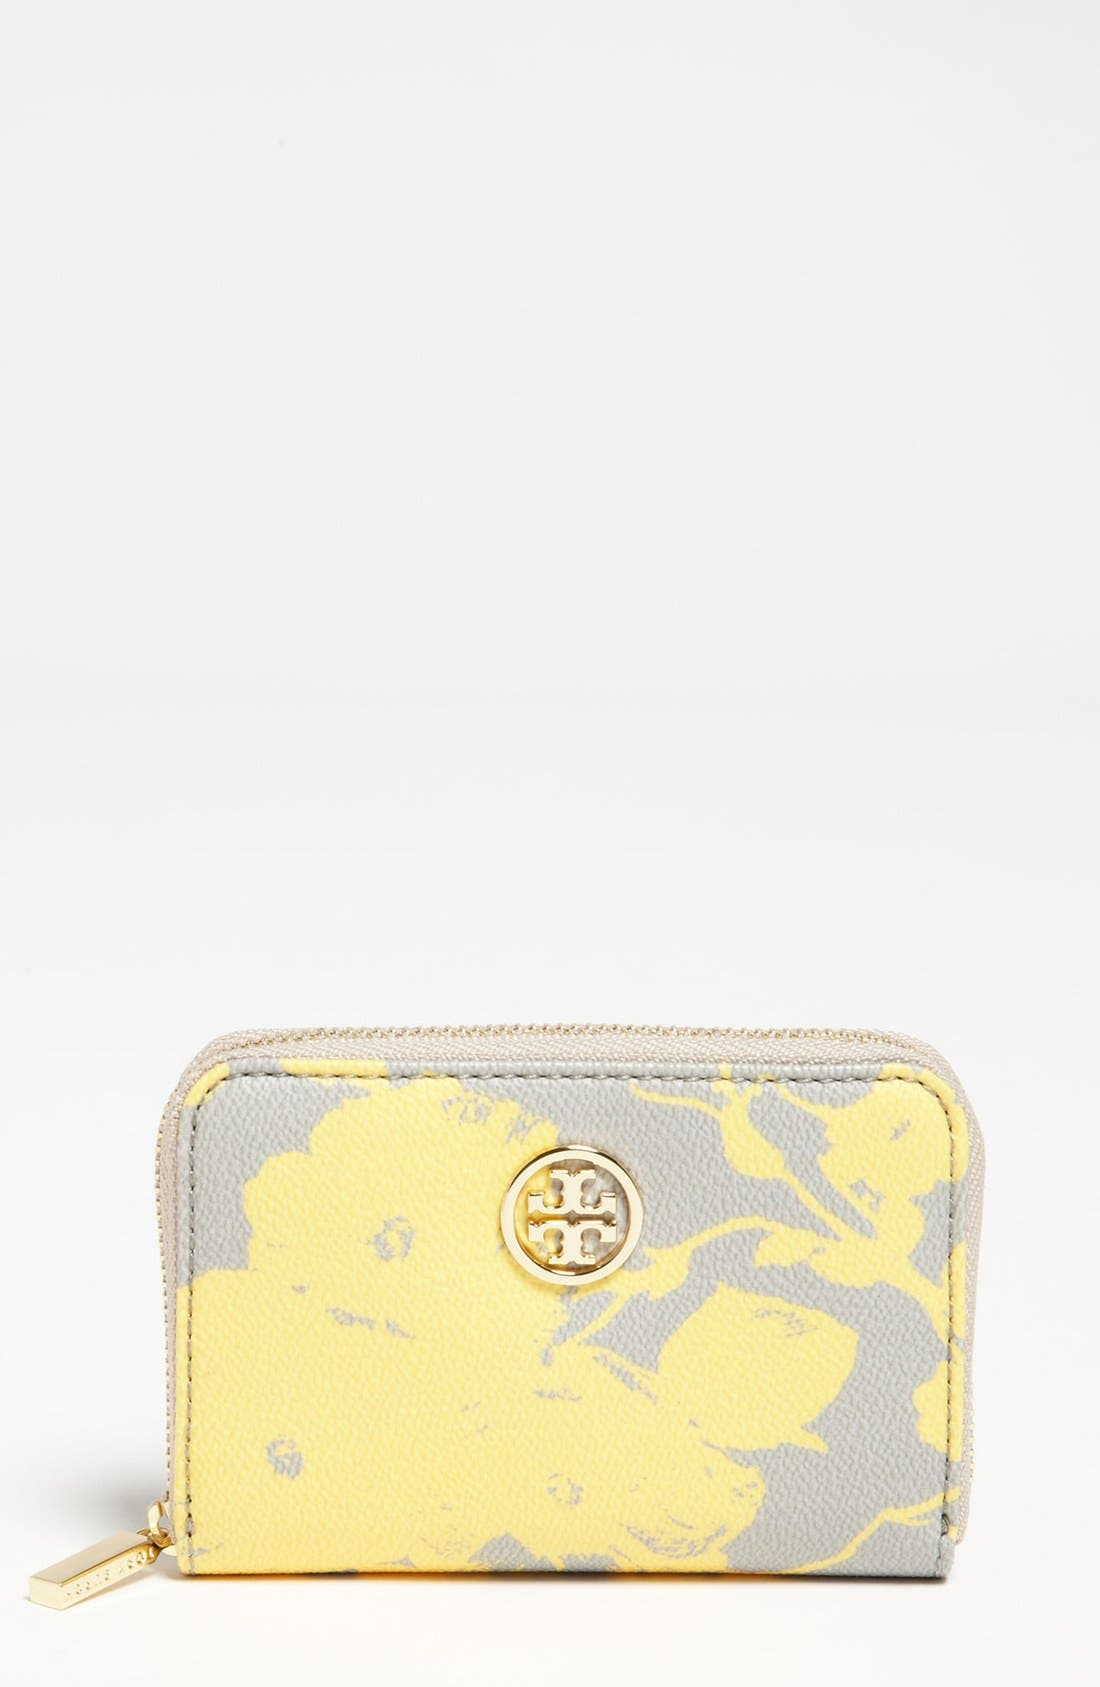 Alternate Image 1 Selected - Tory Burch 'Robinson' Coin Wallet